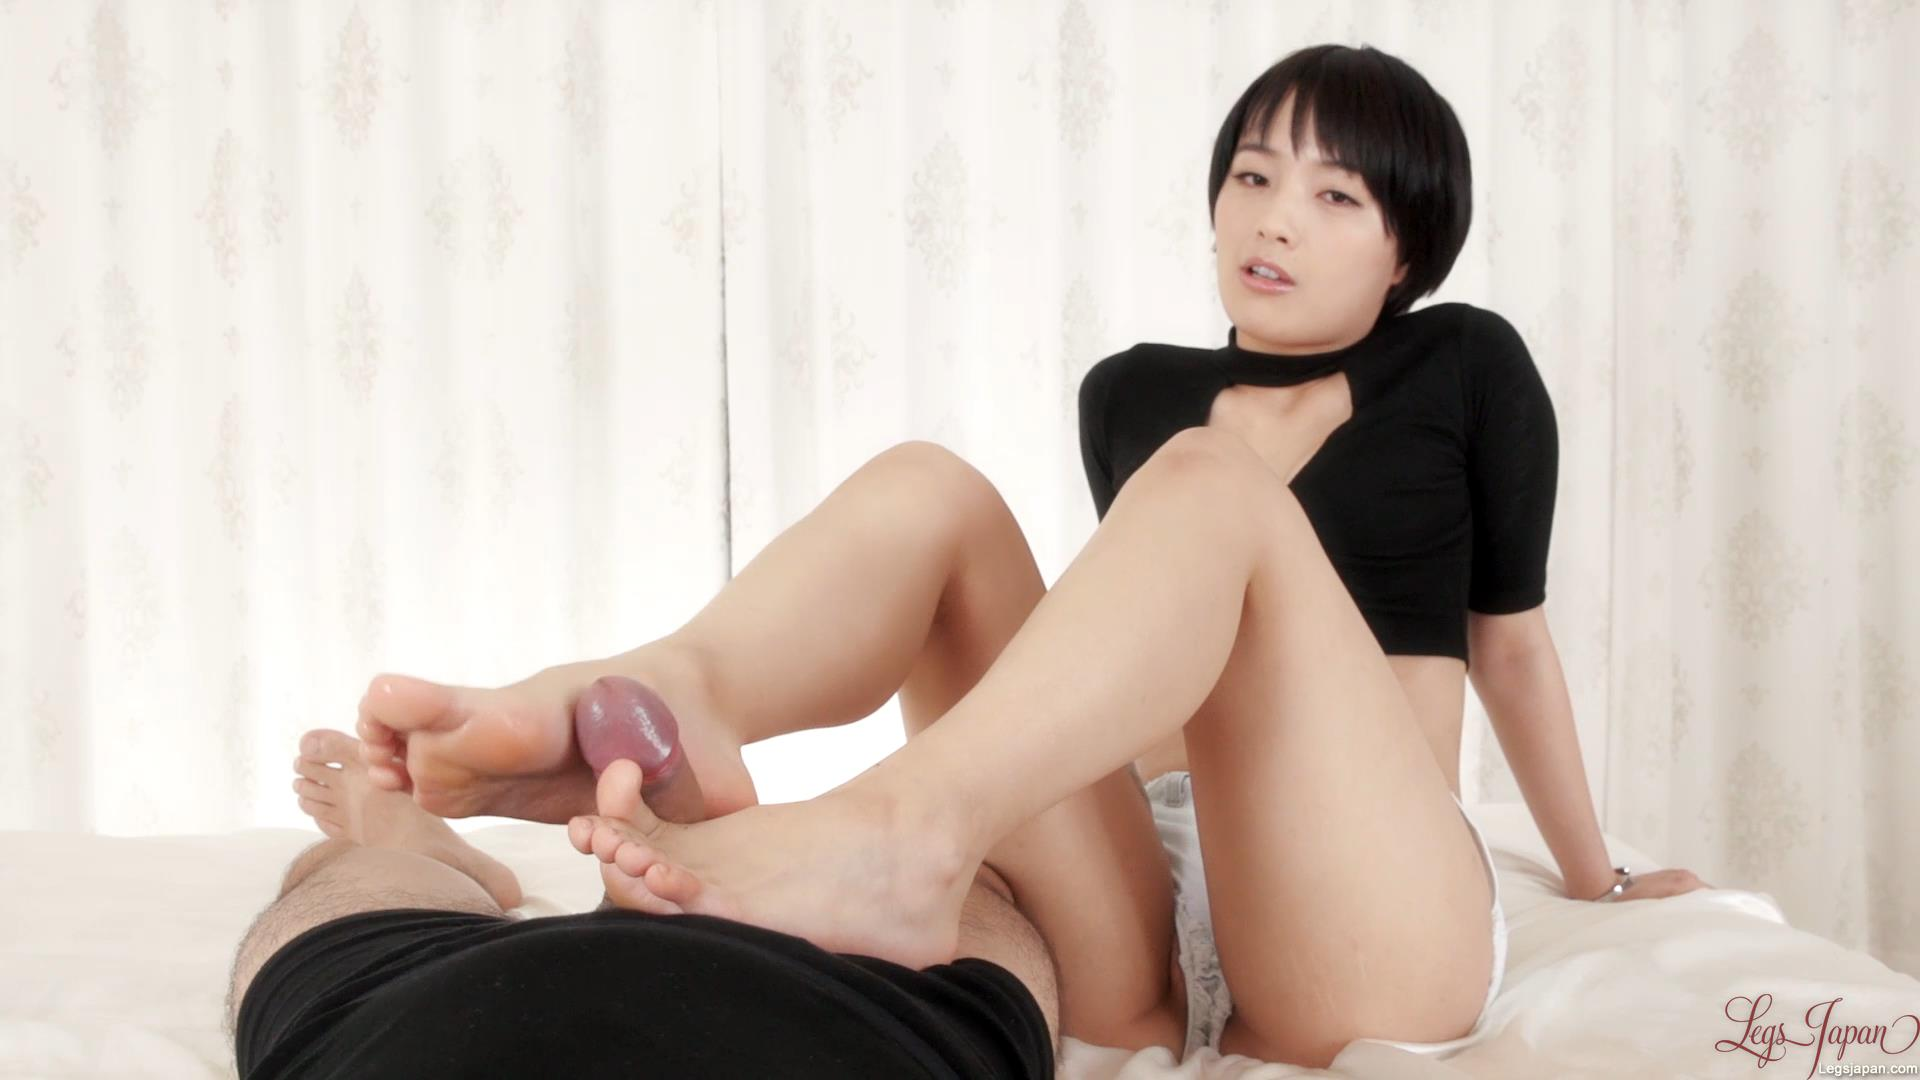 Footjob in Short Shorts – Legs Japan – Ai Mukai